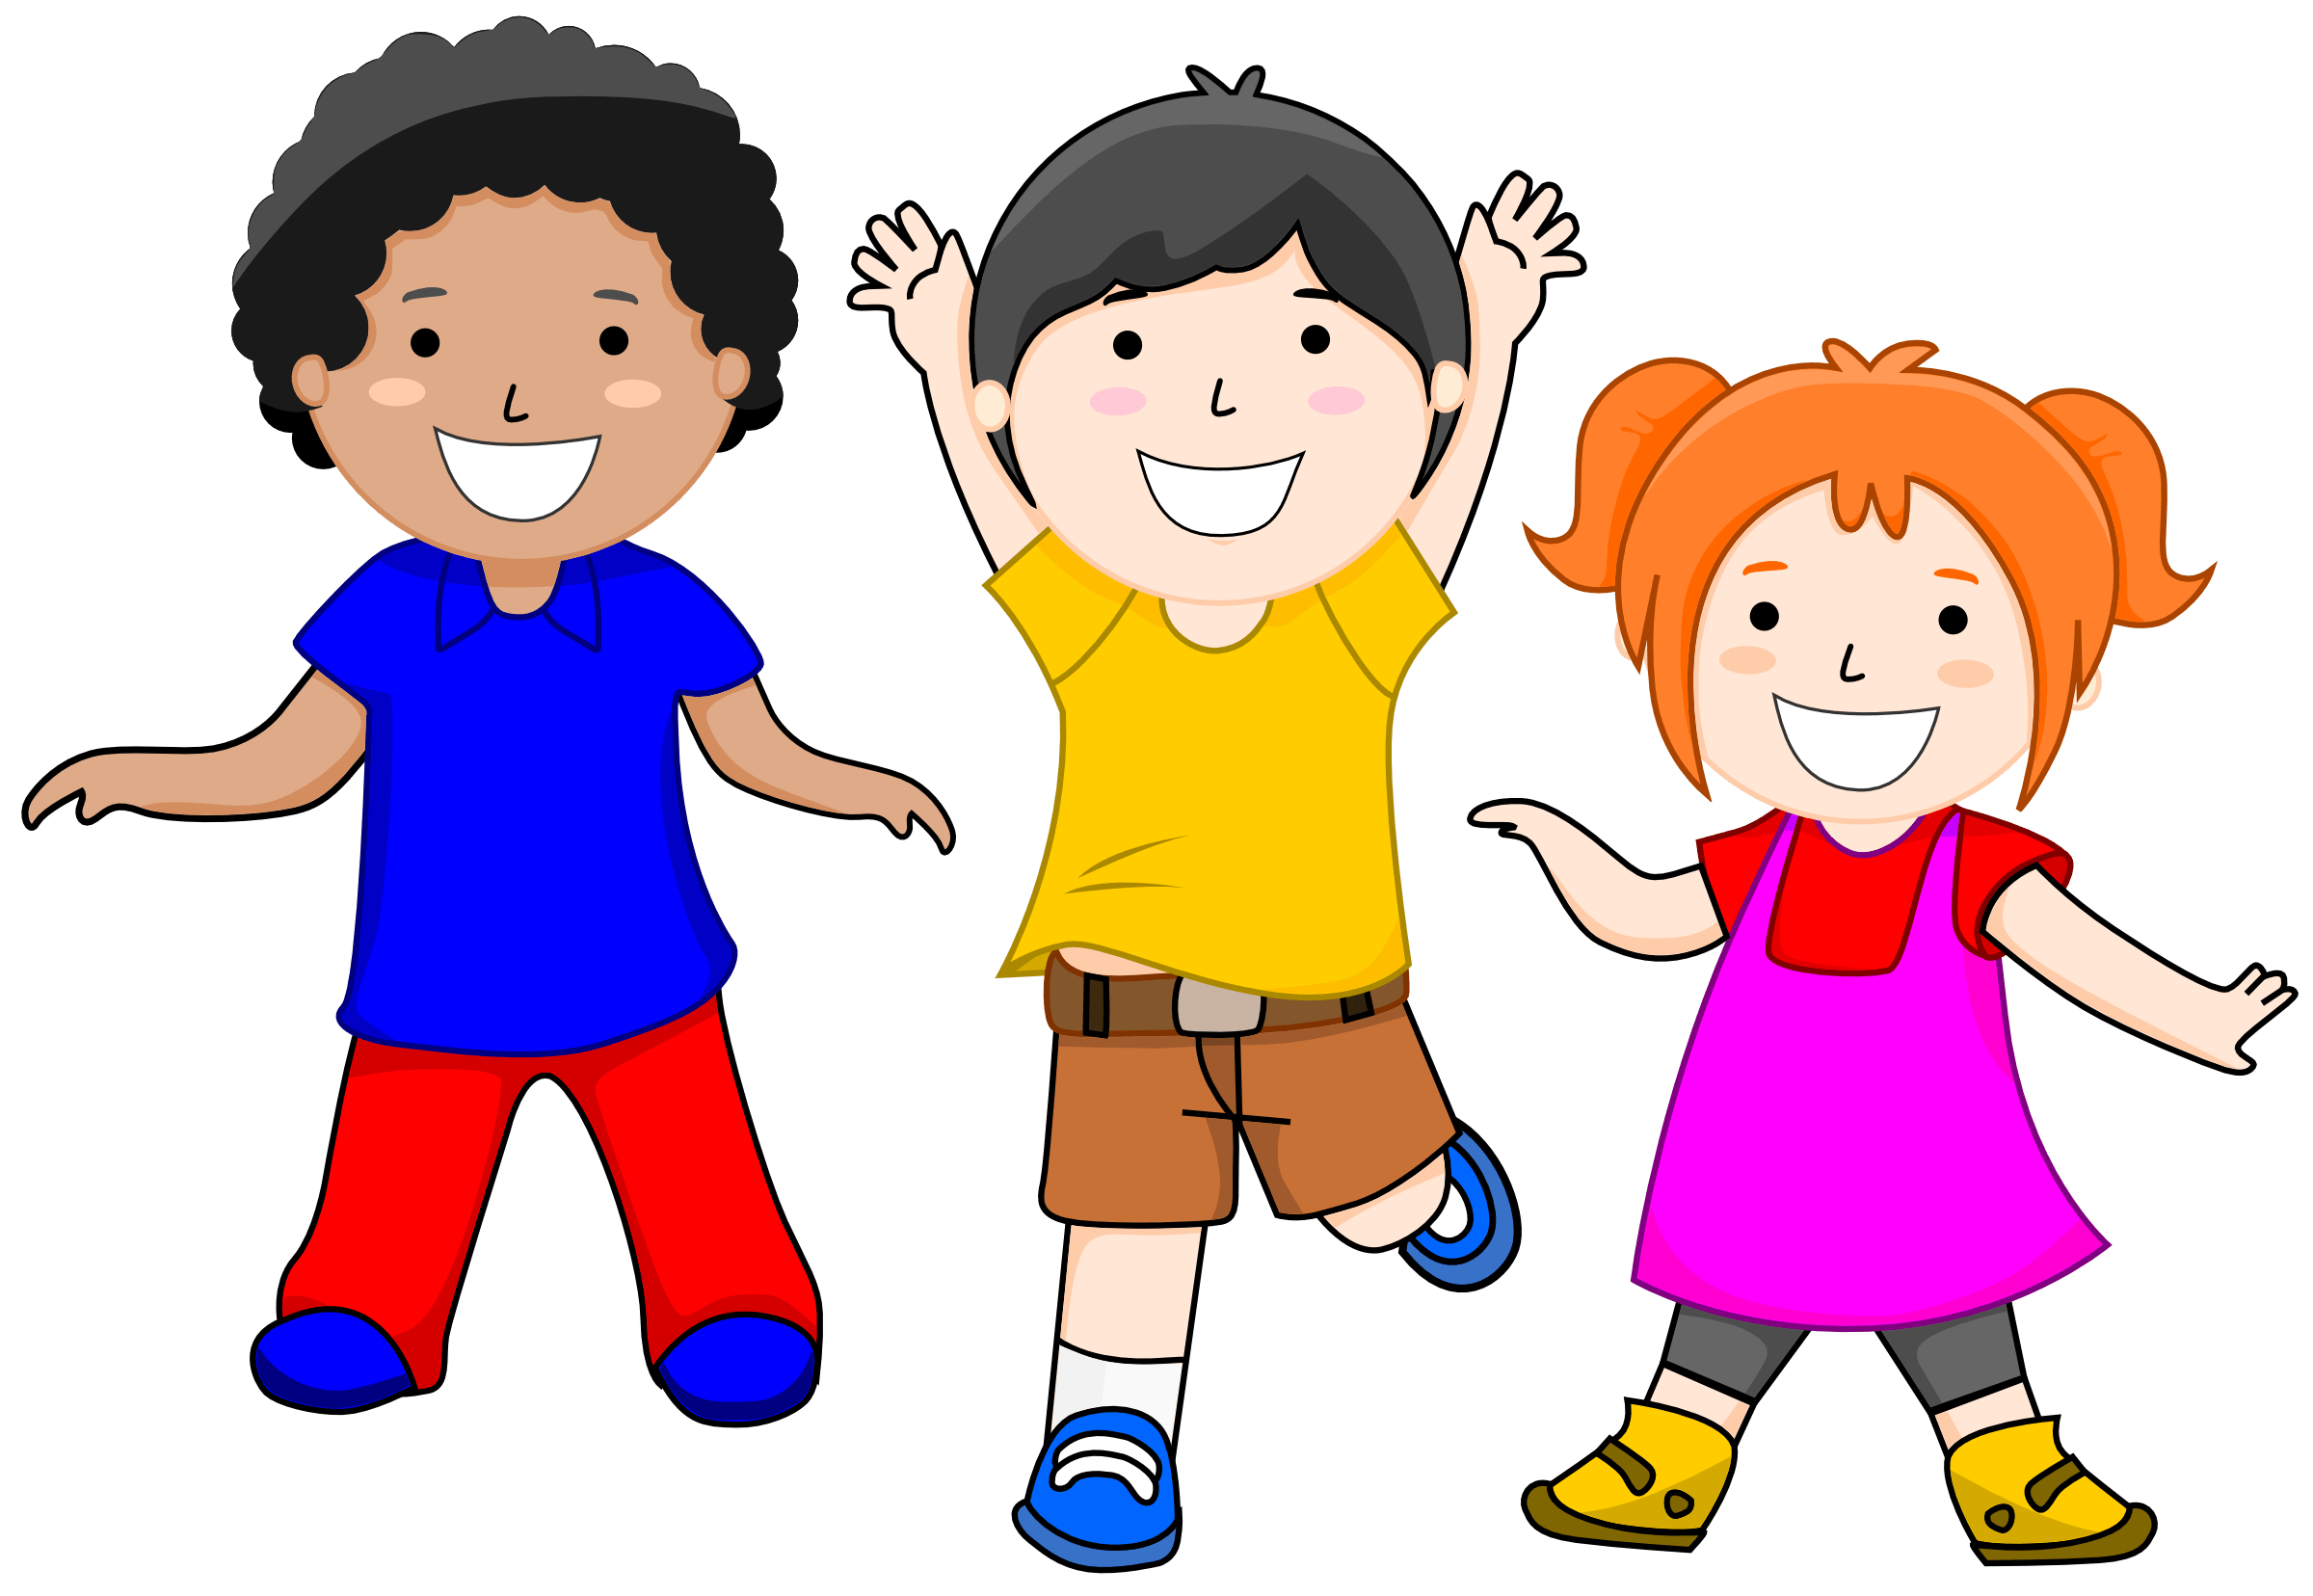 Friends dancing clip art clipart images gallery for free download.